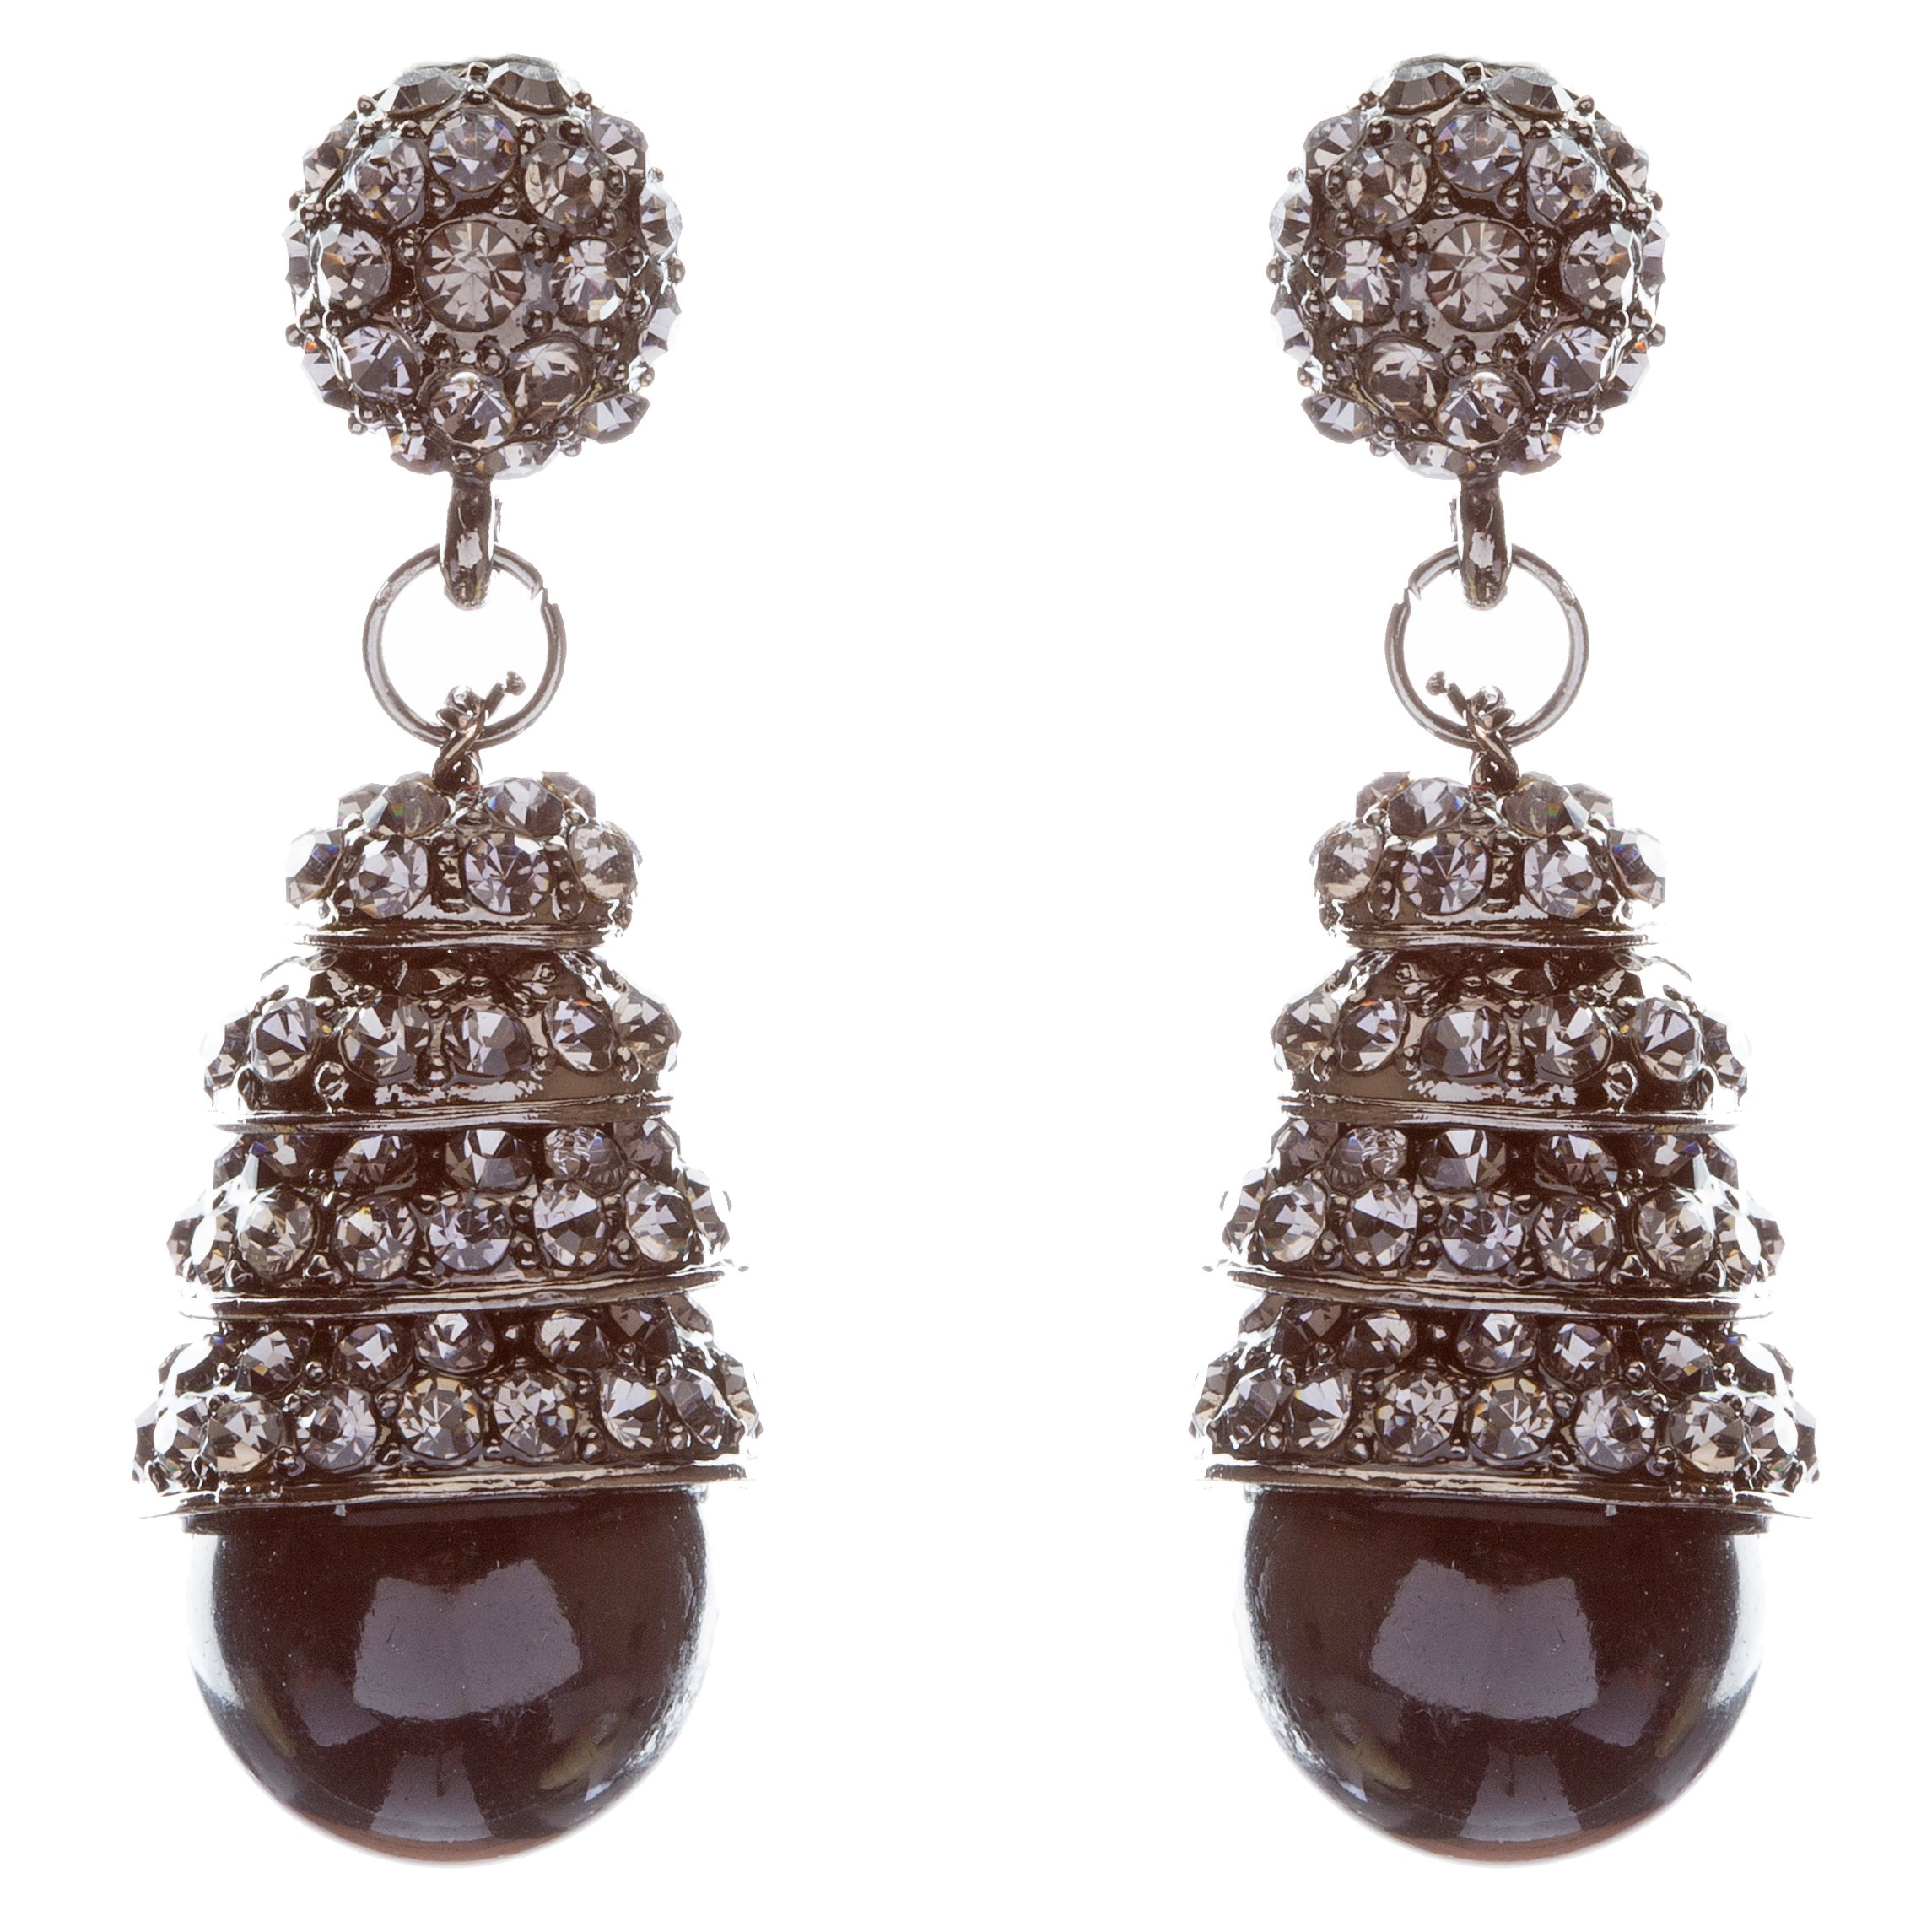 ACCESSORIESFOREVER Sophisticated Elegant Crystal Rhinestone Dangle Fashion Earrings E325 Black